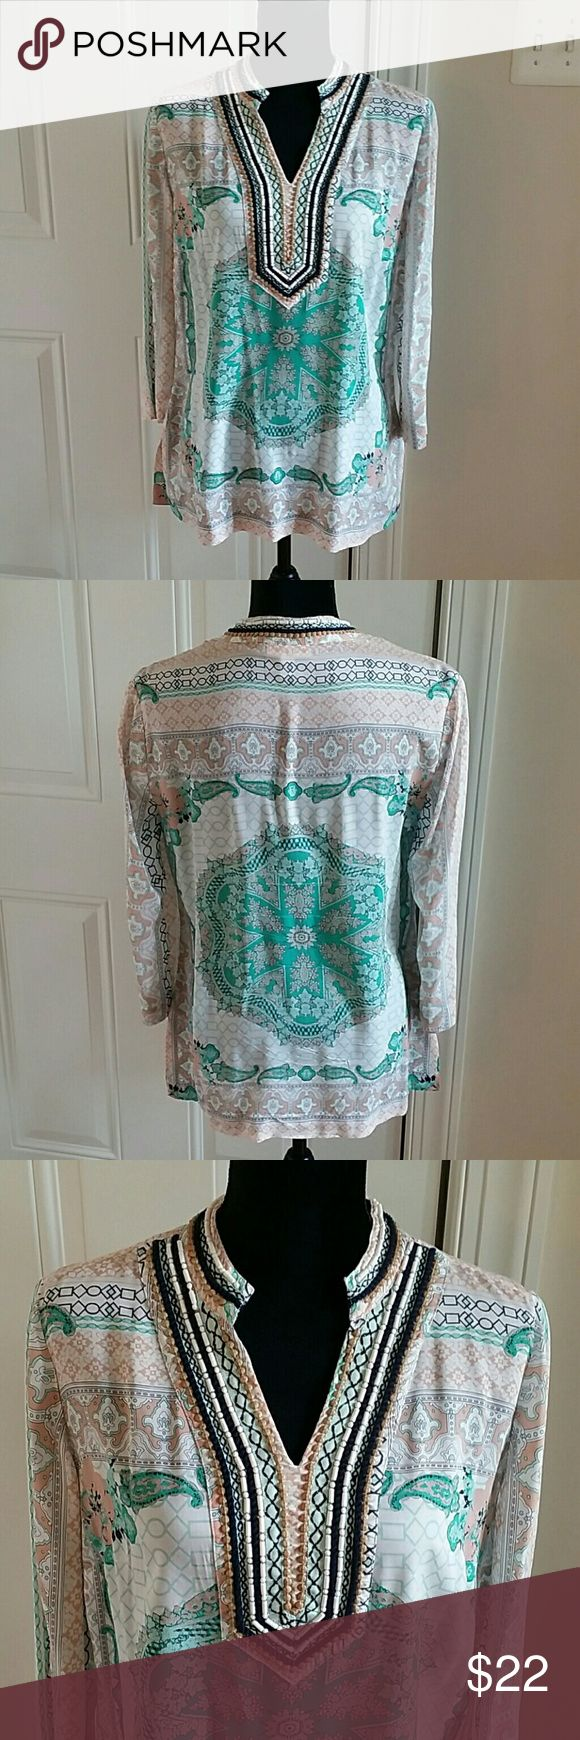 Charter club size S Tunic 👉 Description :  Colorful l Tunic l flowy l full sleeves l drapes nicely l beautiful bead work around neck.  👉 Material : 100% rayon.  👉 Color : multi color.  👉Condition : Excellent l No holes l No stains l No snags l No pilling l No damage.  👉Measurements will be provided on request.  👉Discount  with  bundles.   No trades 🚫 Charter Club Tops